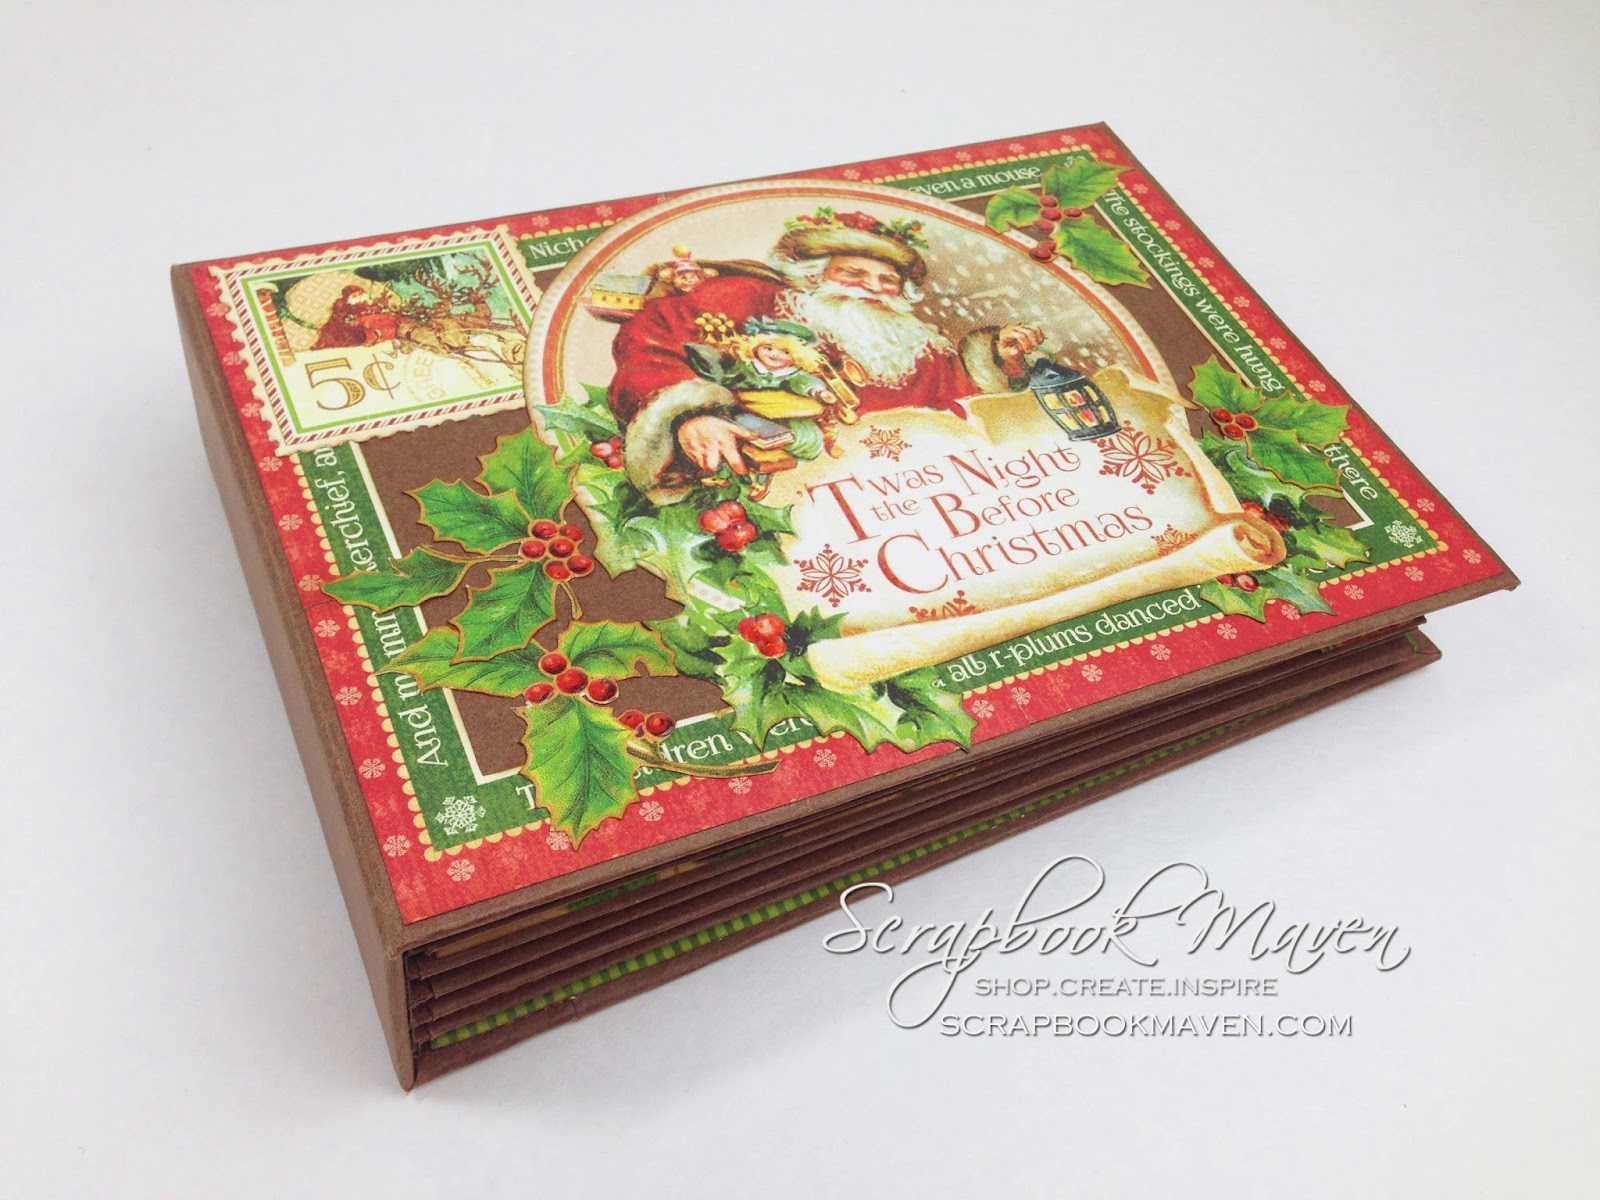 Scrapbook Maven mini album inspiration using Graphic 45 'Twas the Night Before Christmas Paper Collection